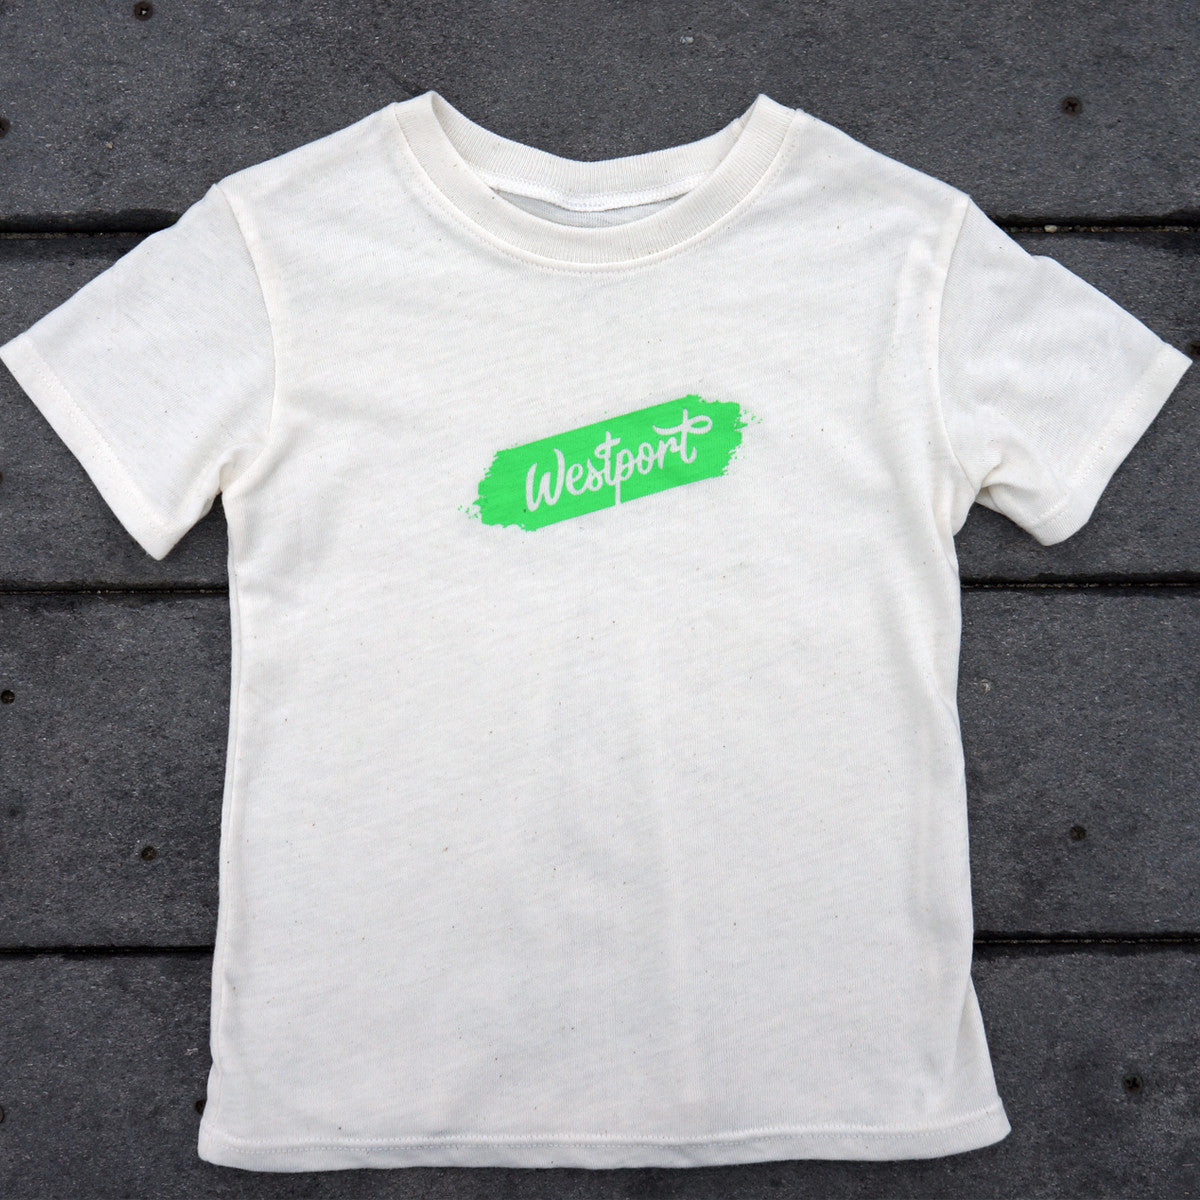 Westport T-Shirt by Townee - Toddler Playground Tee (full)